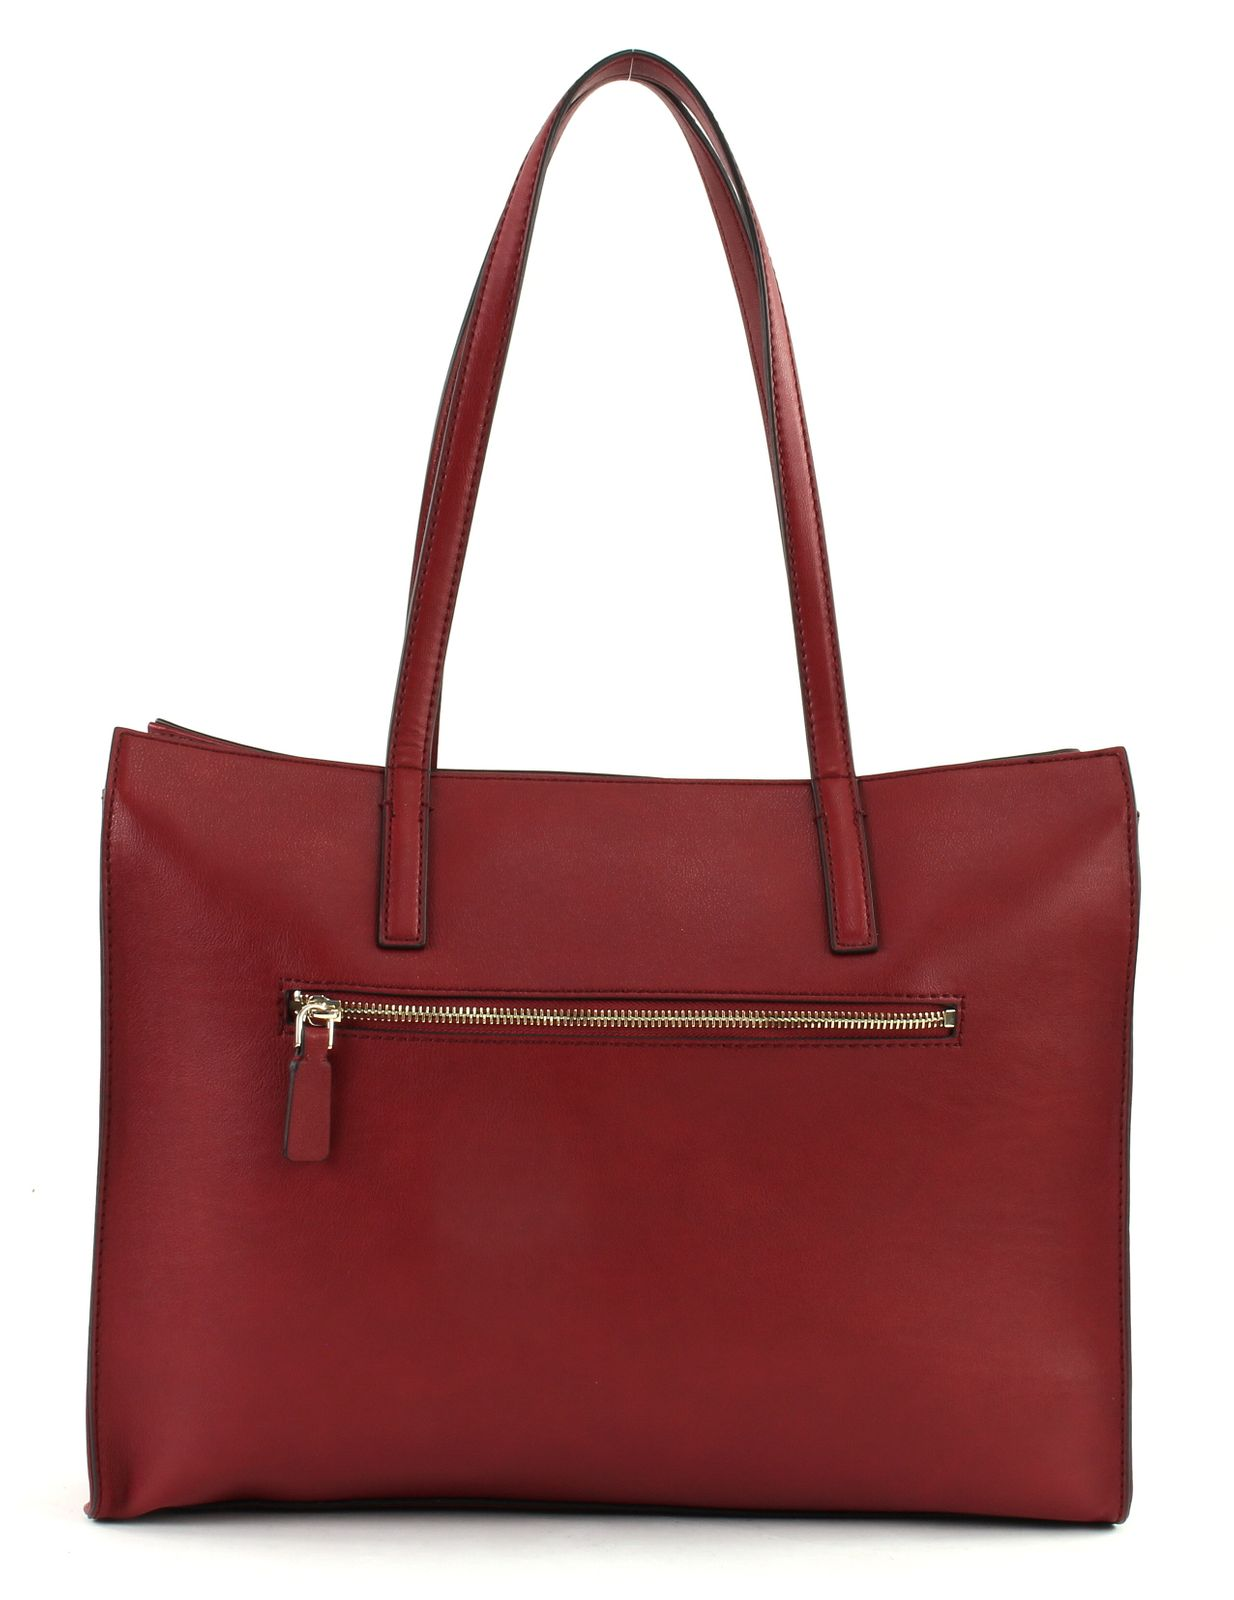 77f7846d15 GUESS Shoulder Bag Sienna 2 in 1 Tote Red 190231173670